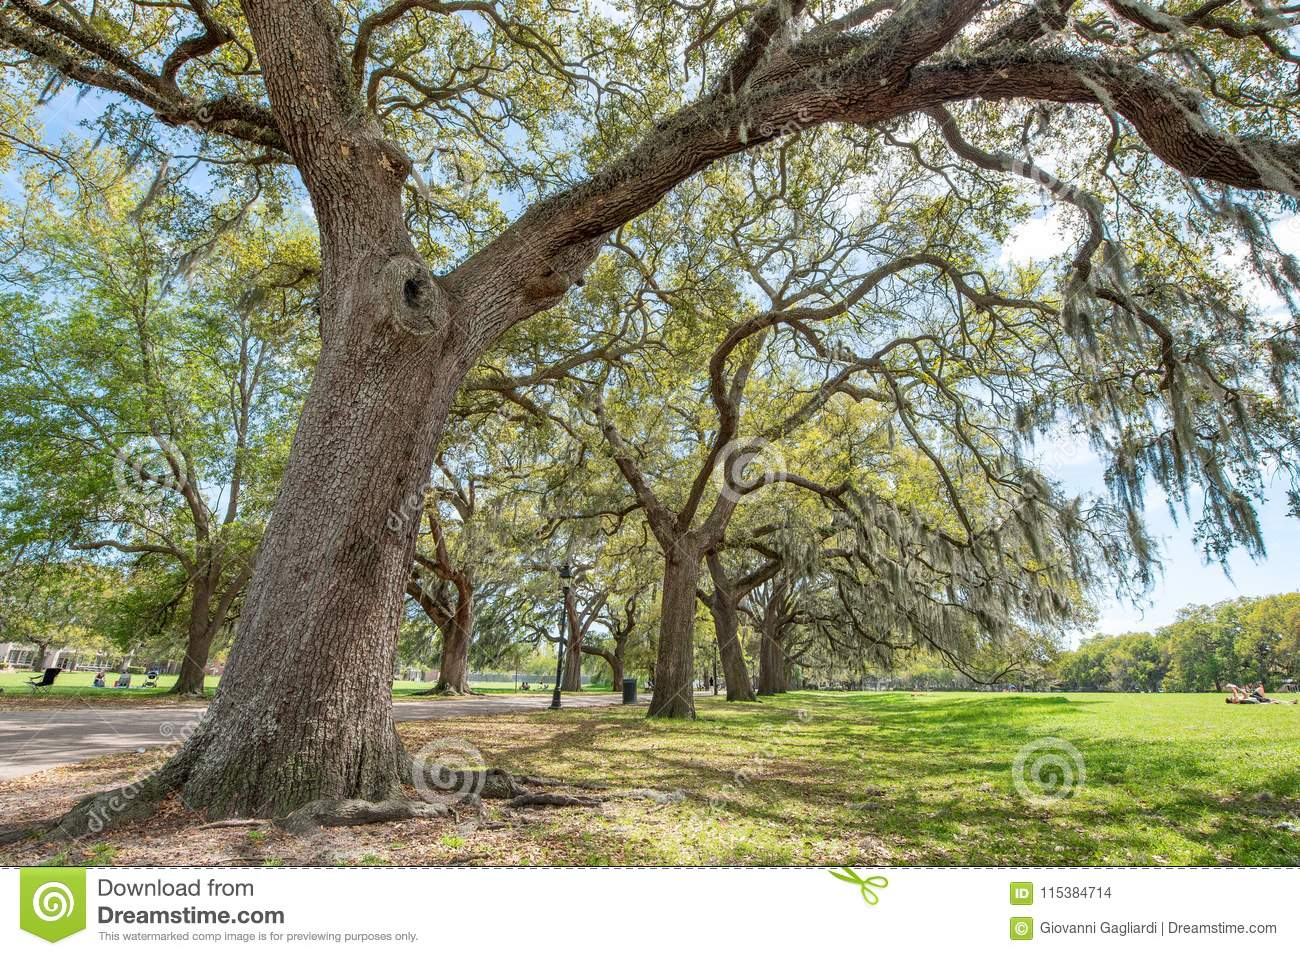 Trees of Forsyth Park in Savannah, Georgia - USA